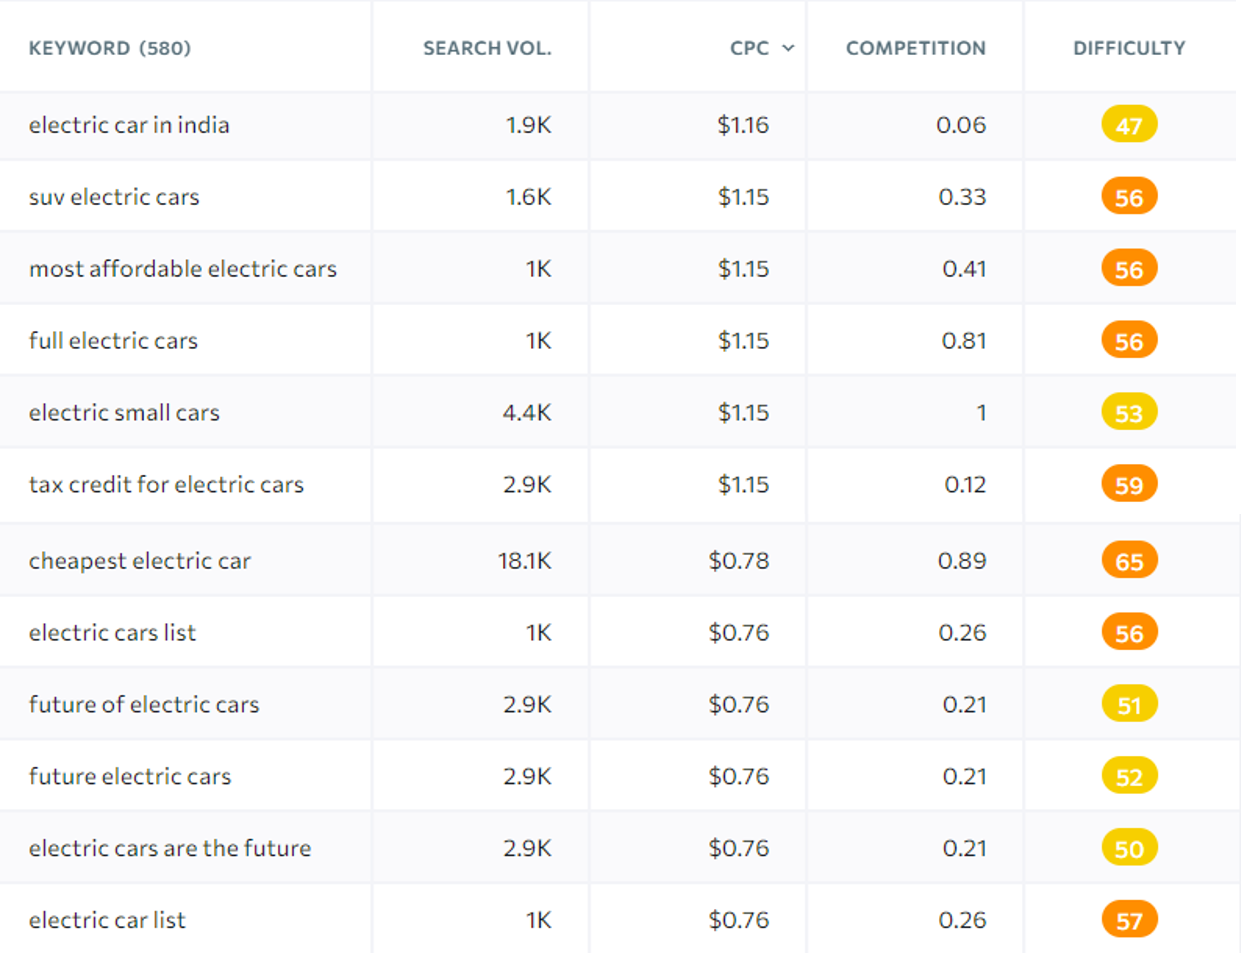 èxamples of profitable keywords with transactional search intent